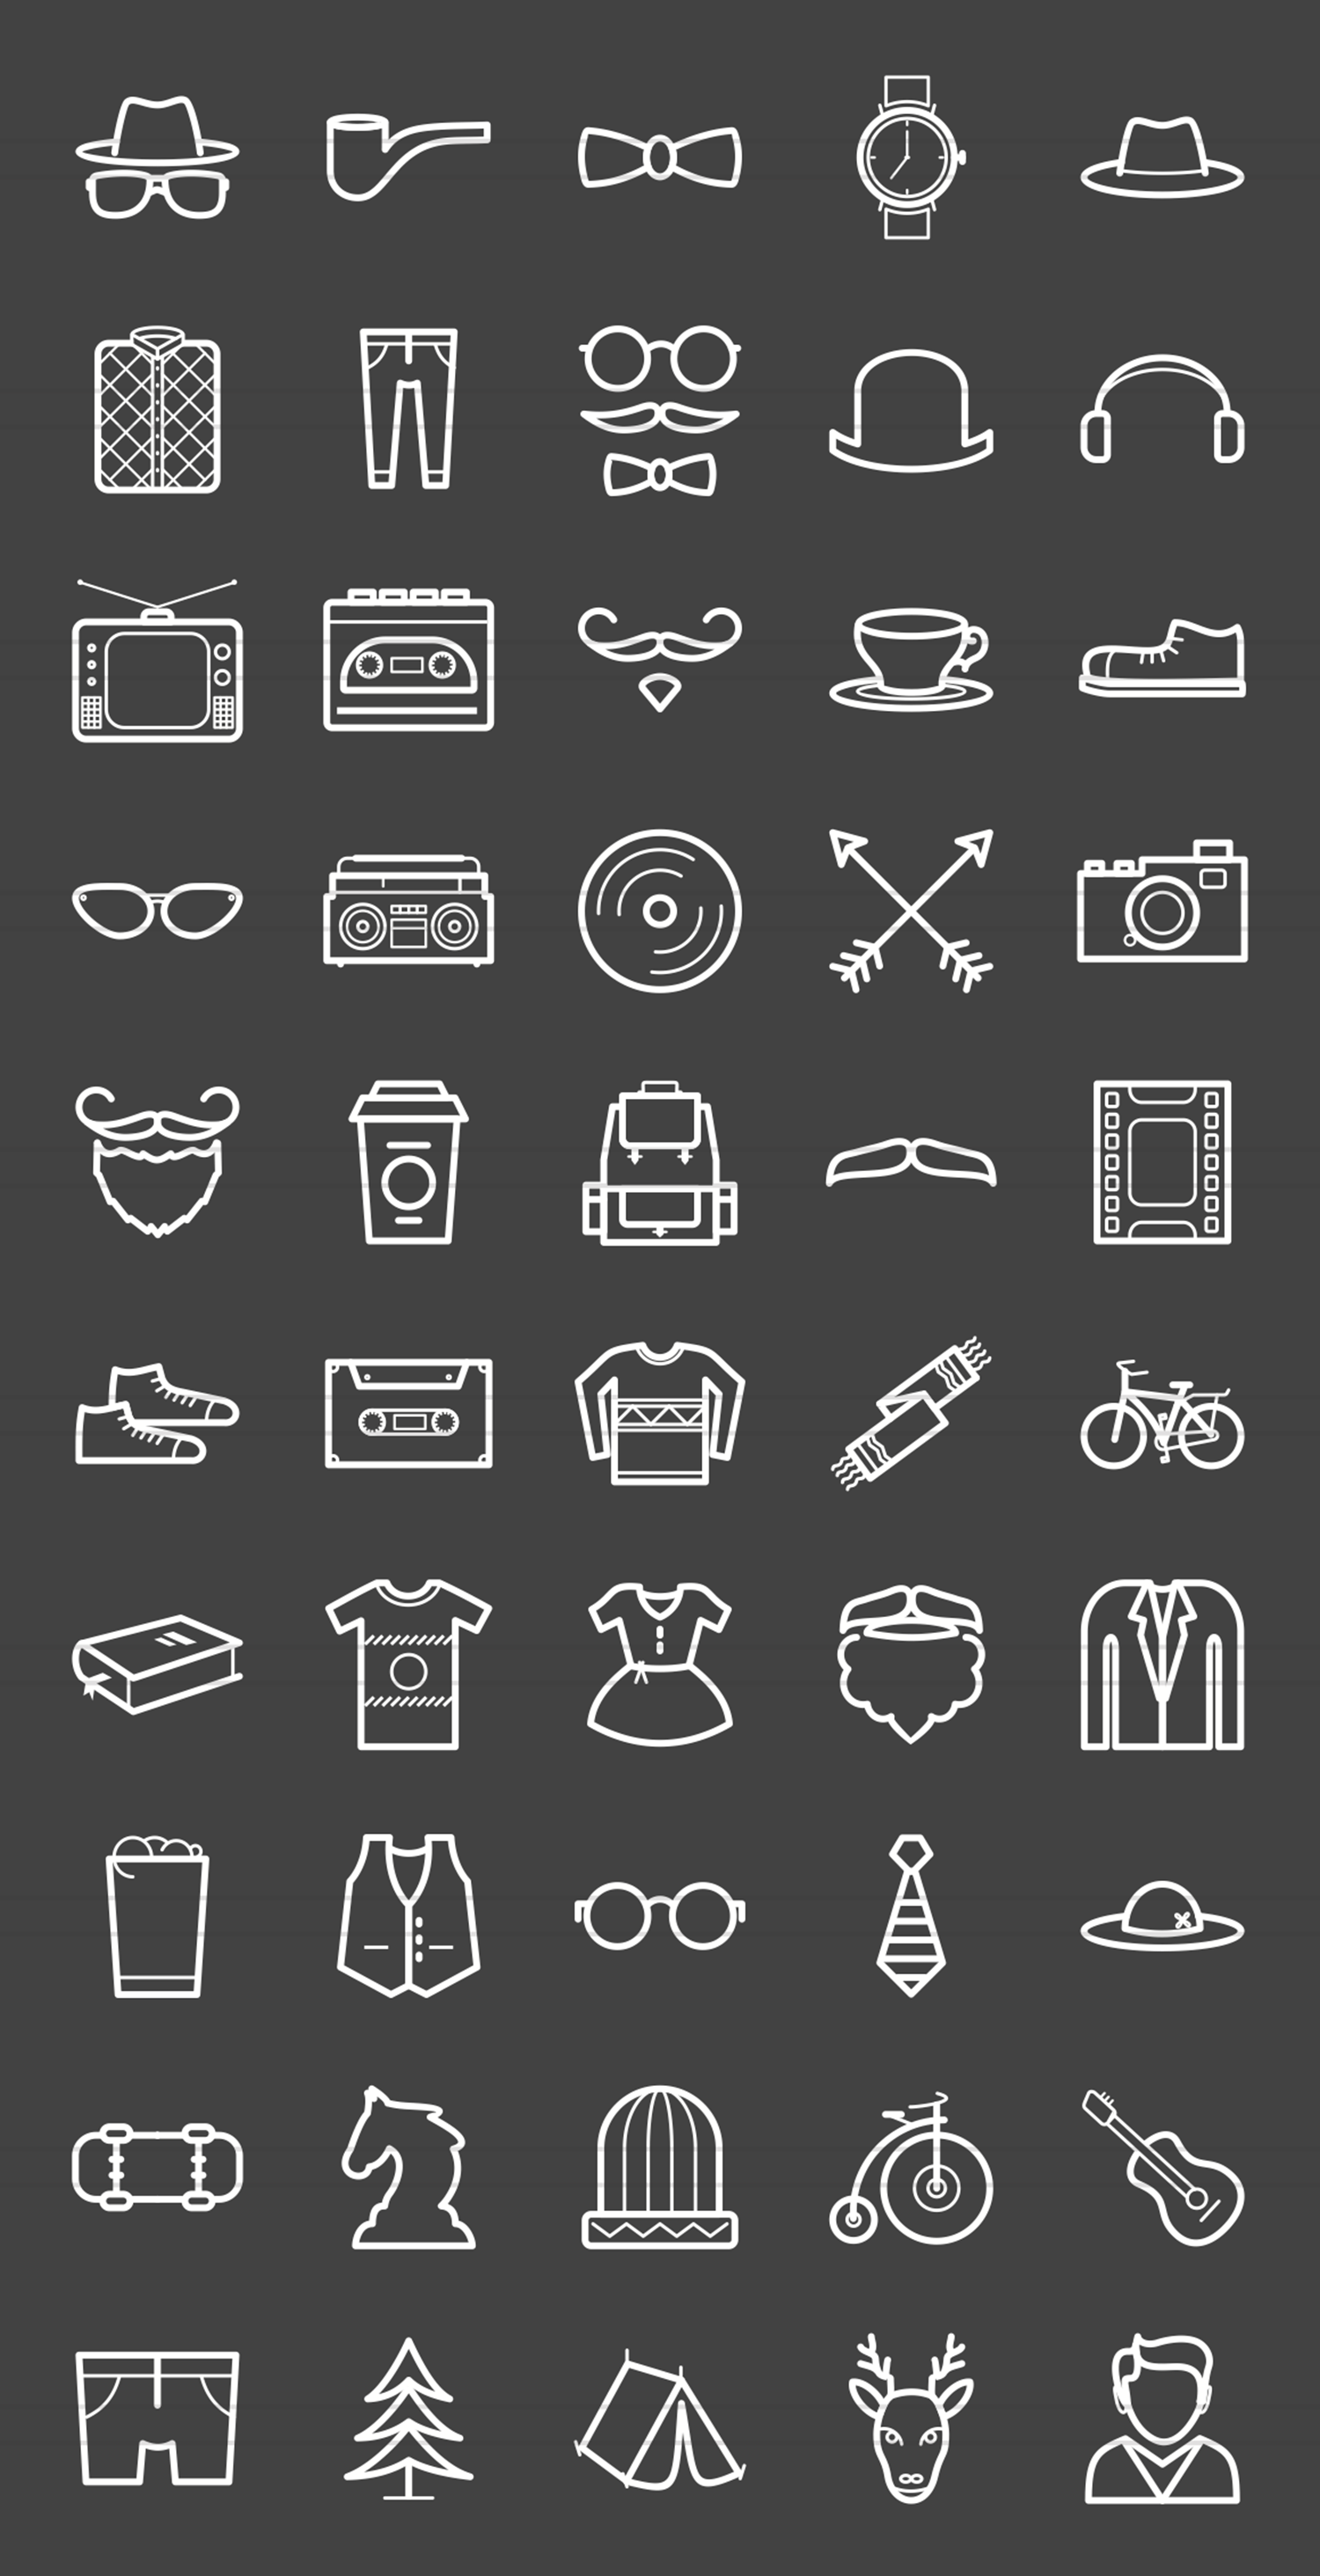 50 Hipster Line Inverted Icons example image 2